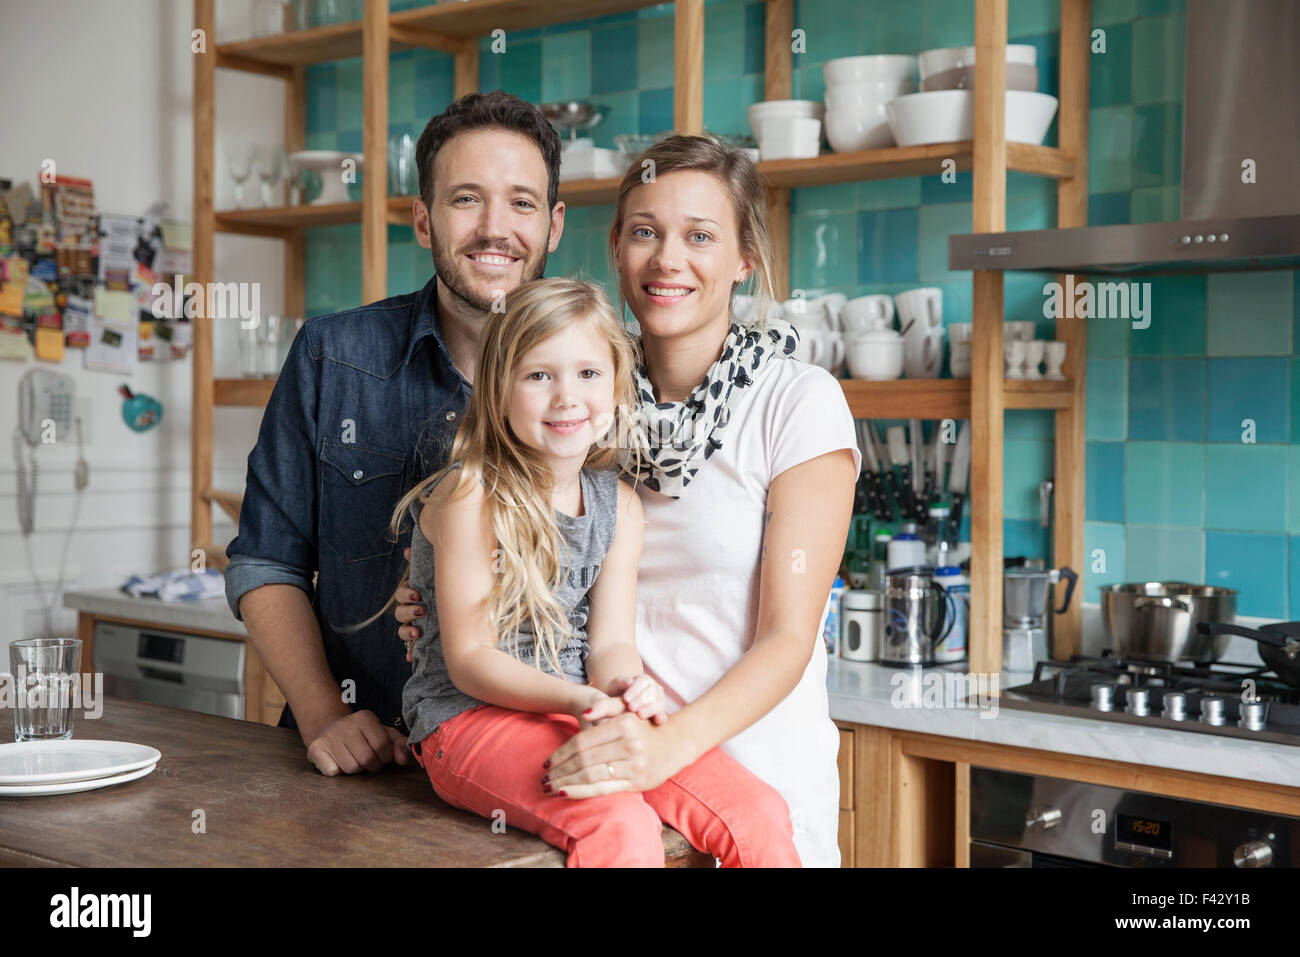 Family at home together in kitchen, portrait Stock Photo